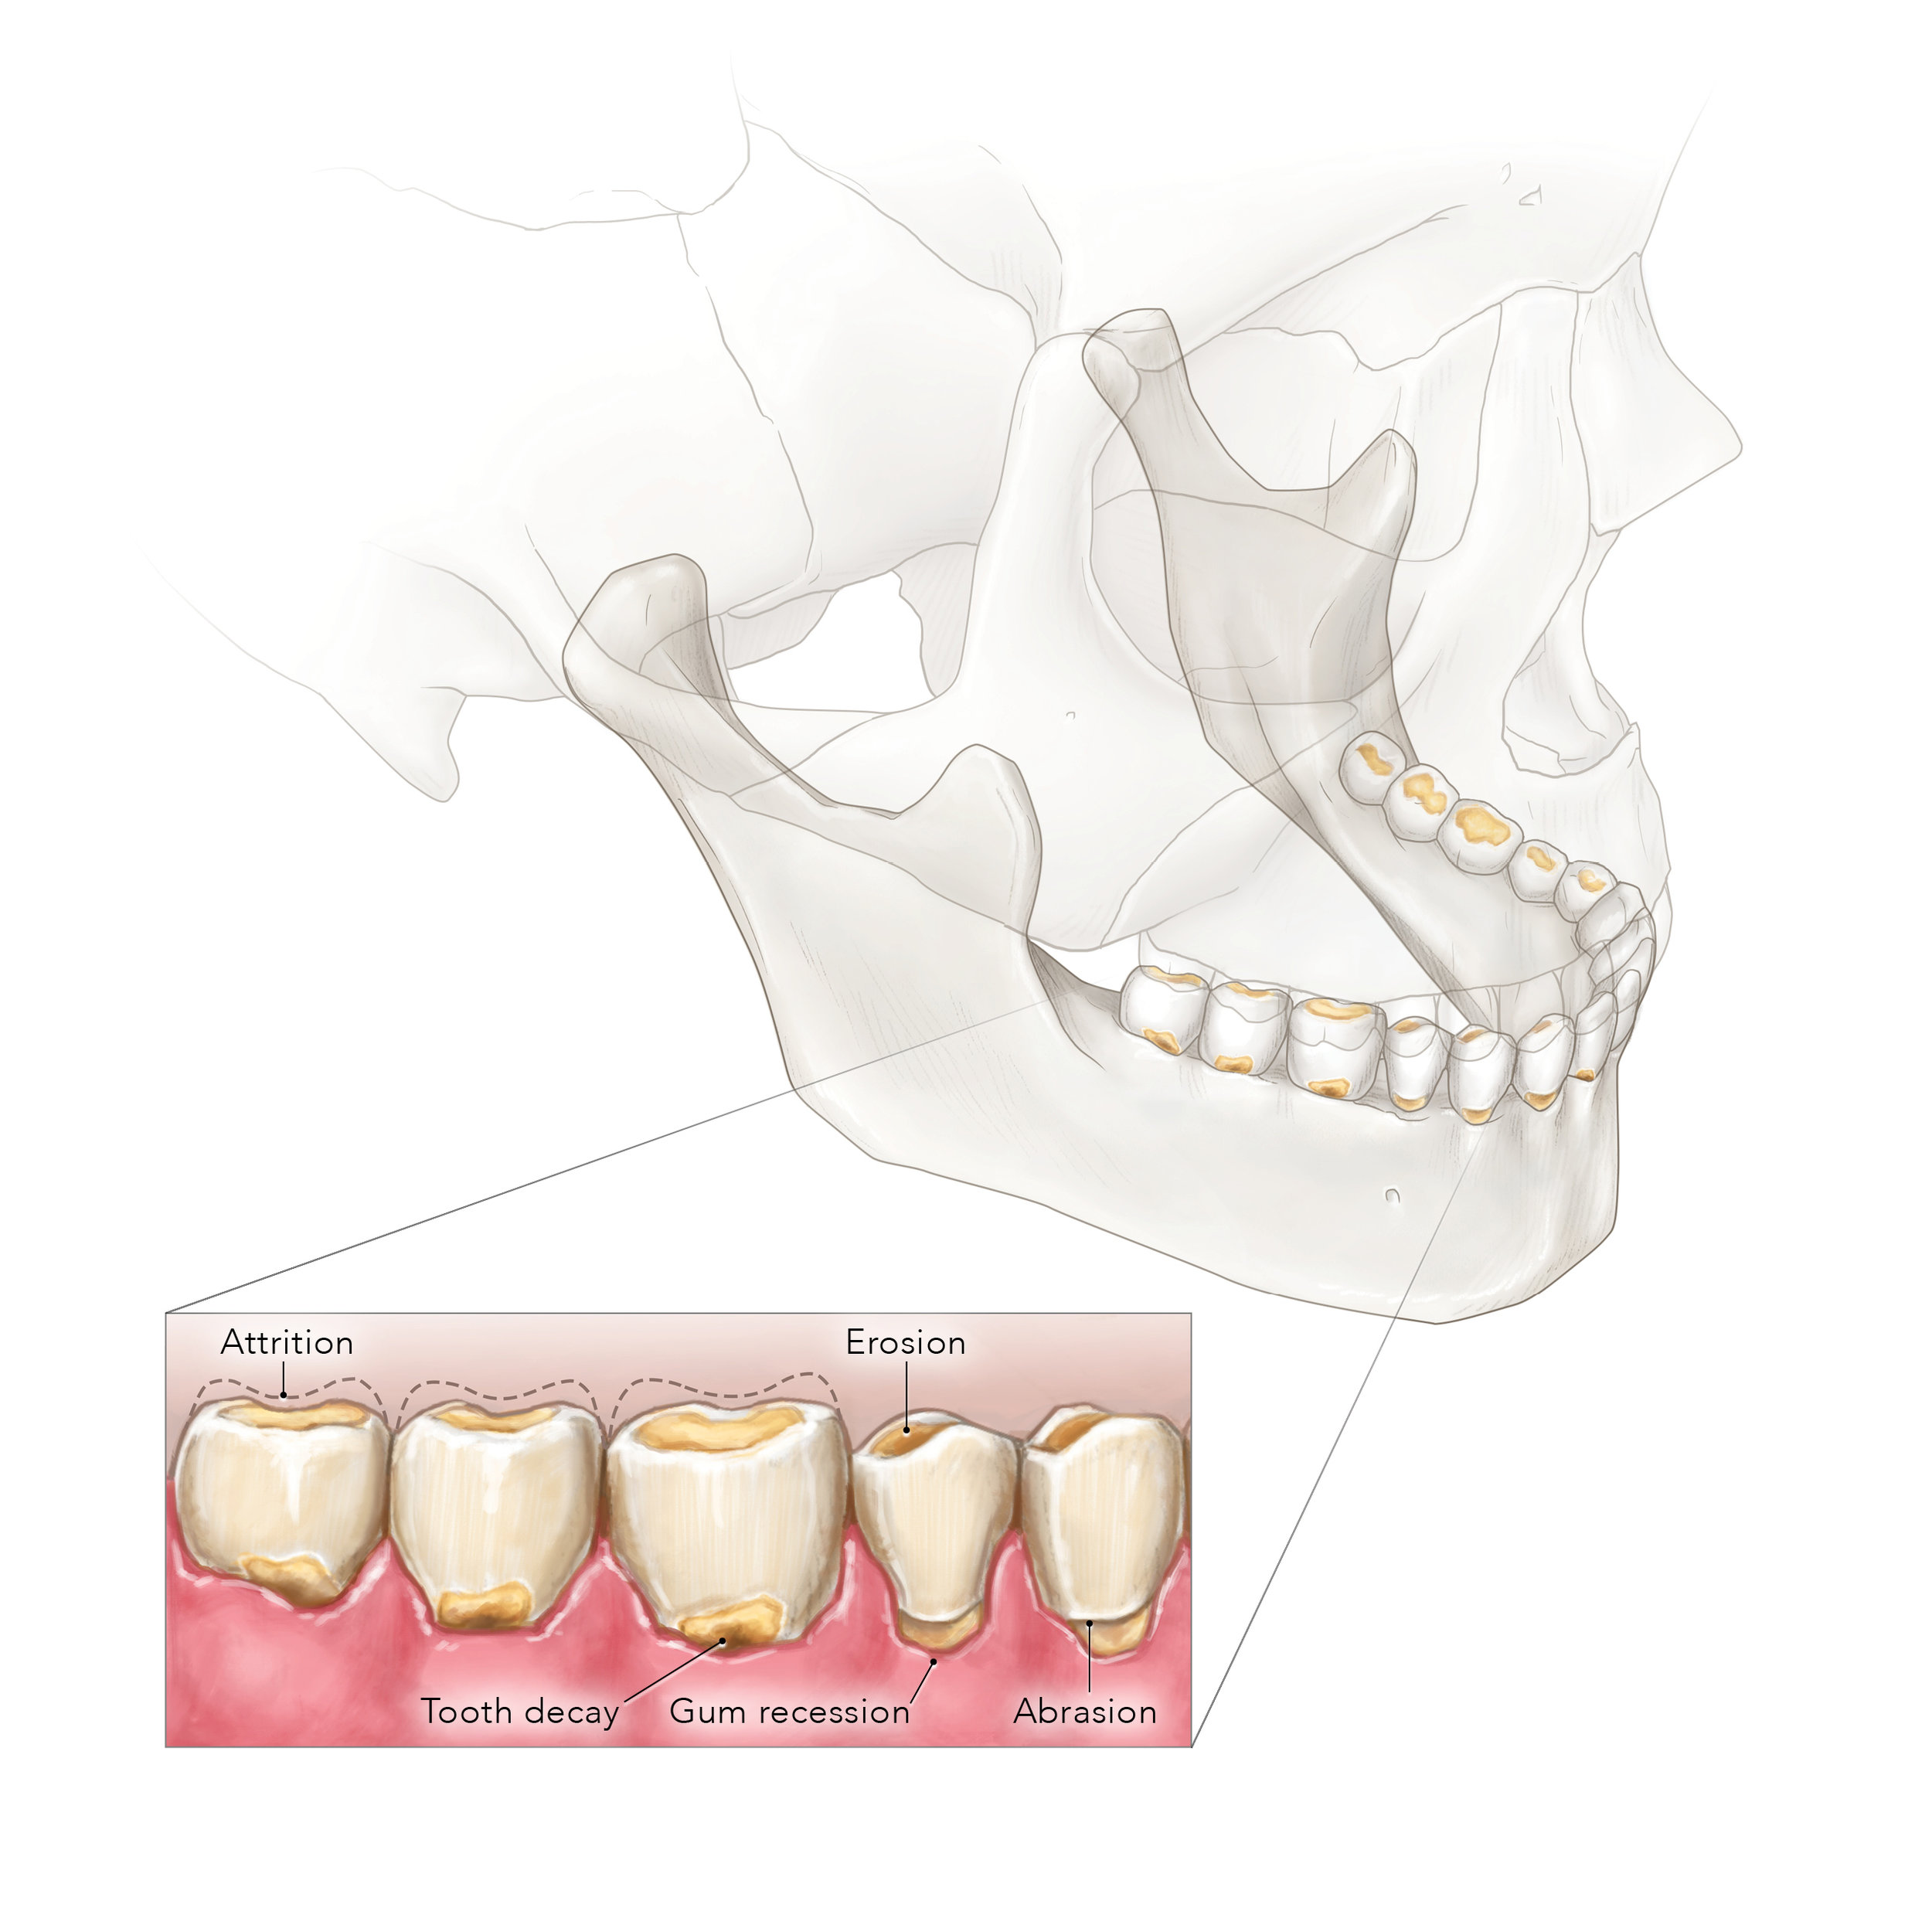 Tooth wear and decay_1.jpg